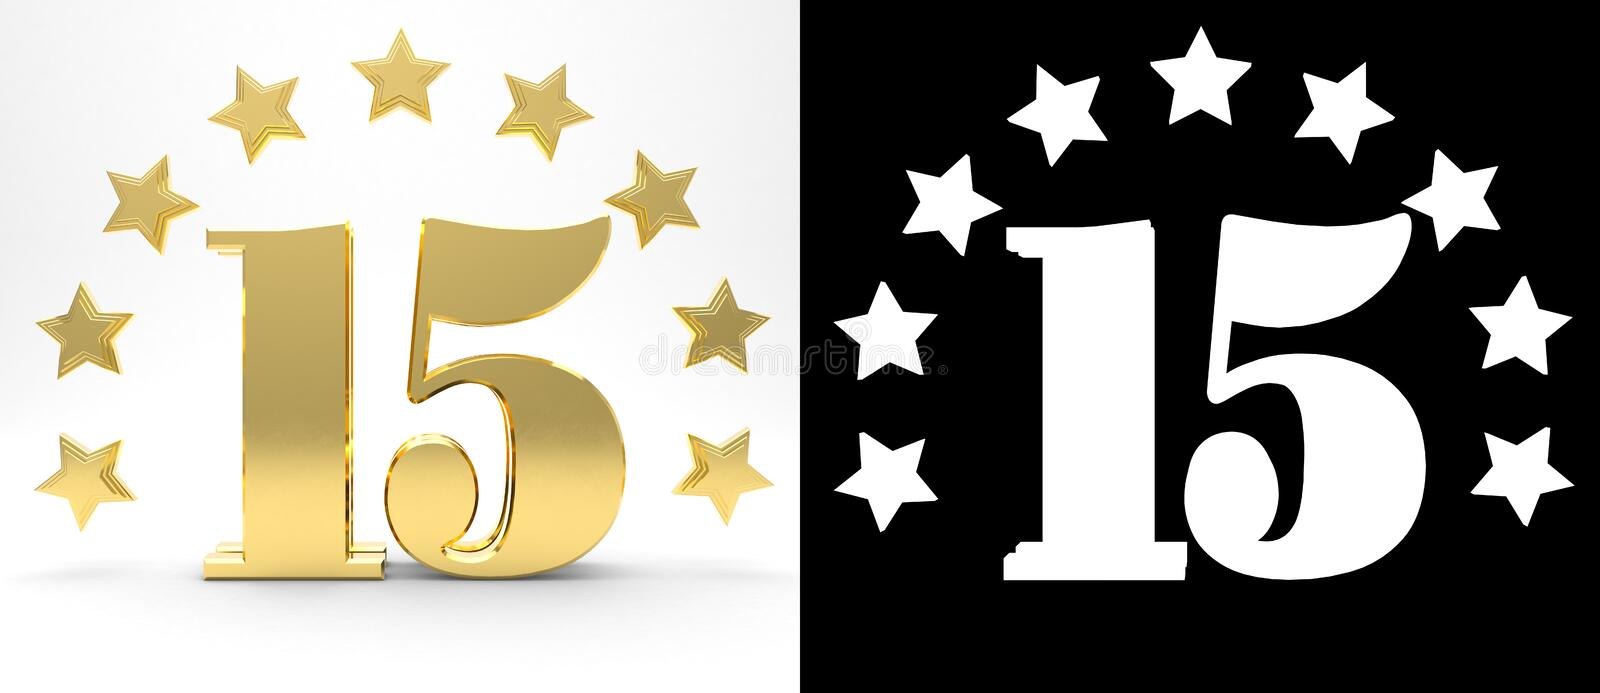 Golden number fifteen on white background with drop shadow and alpha channel , decorated with a circle of stars. 3D illustration.  royalty free illustration